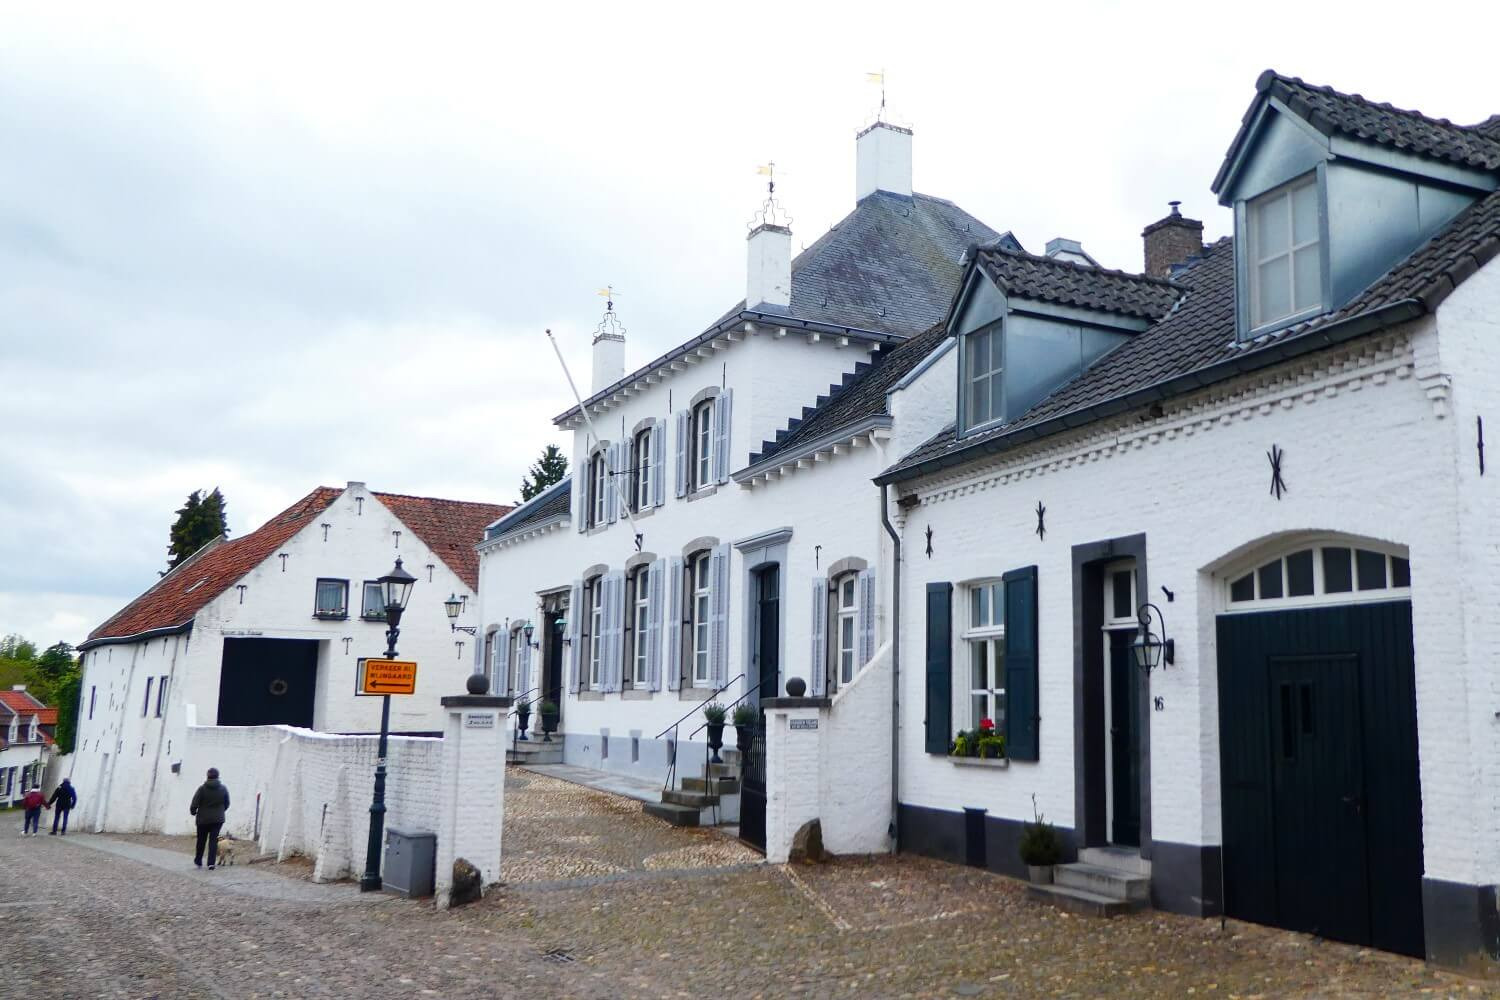 The white houses of the white town in Limburg